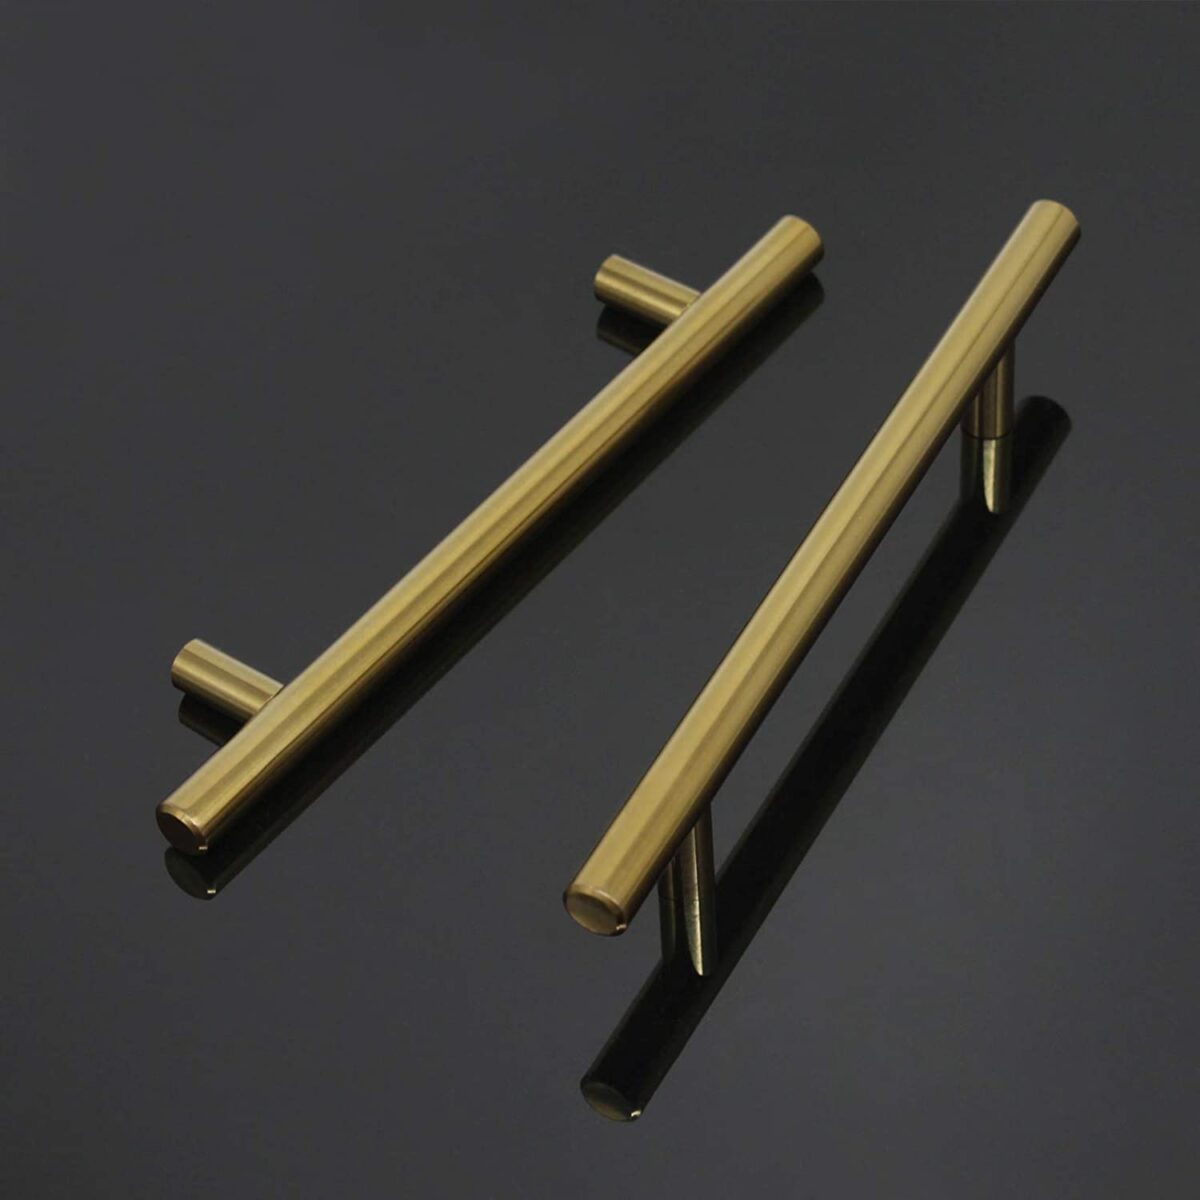 Handles for trays 2pcs